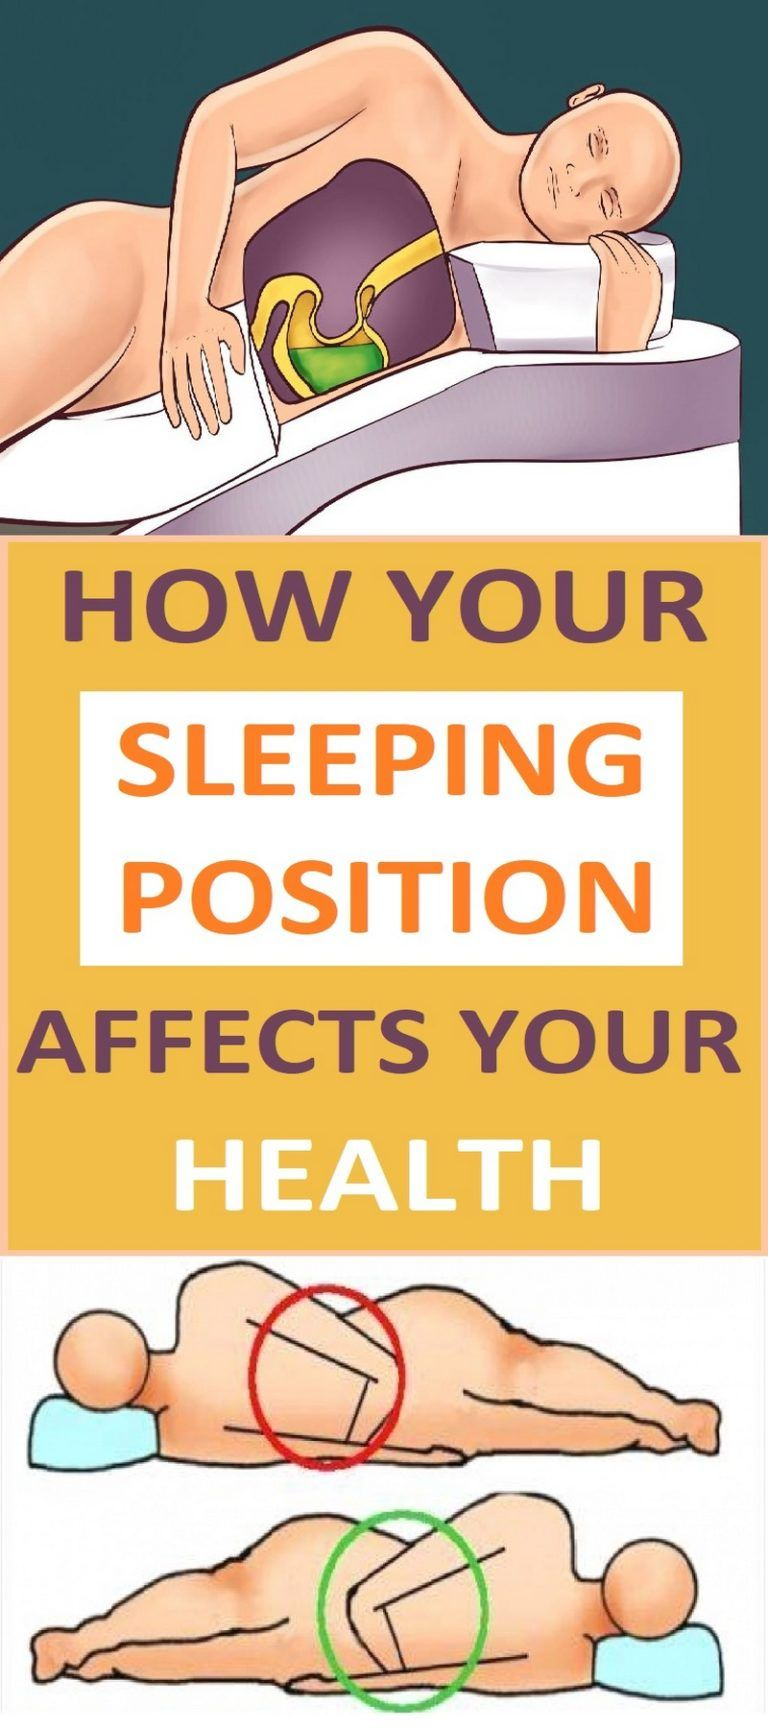 How different sleep positions affect your wellbeing